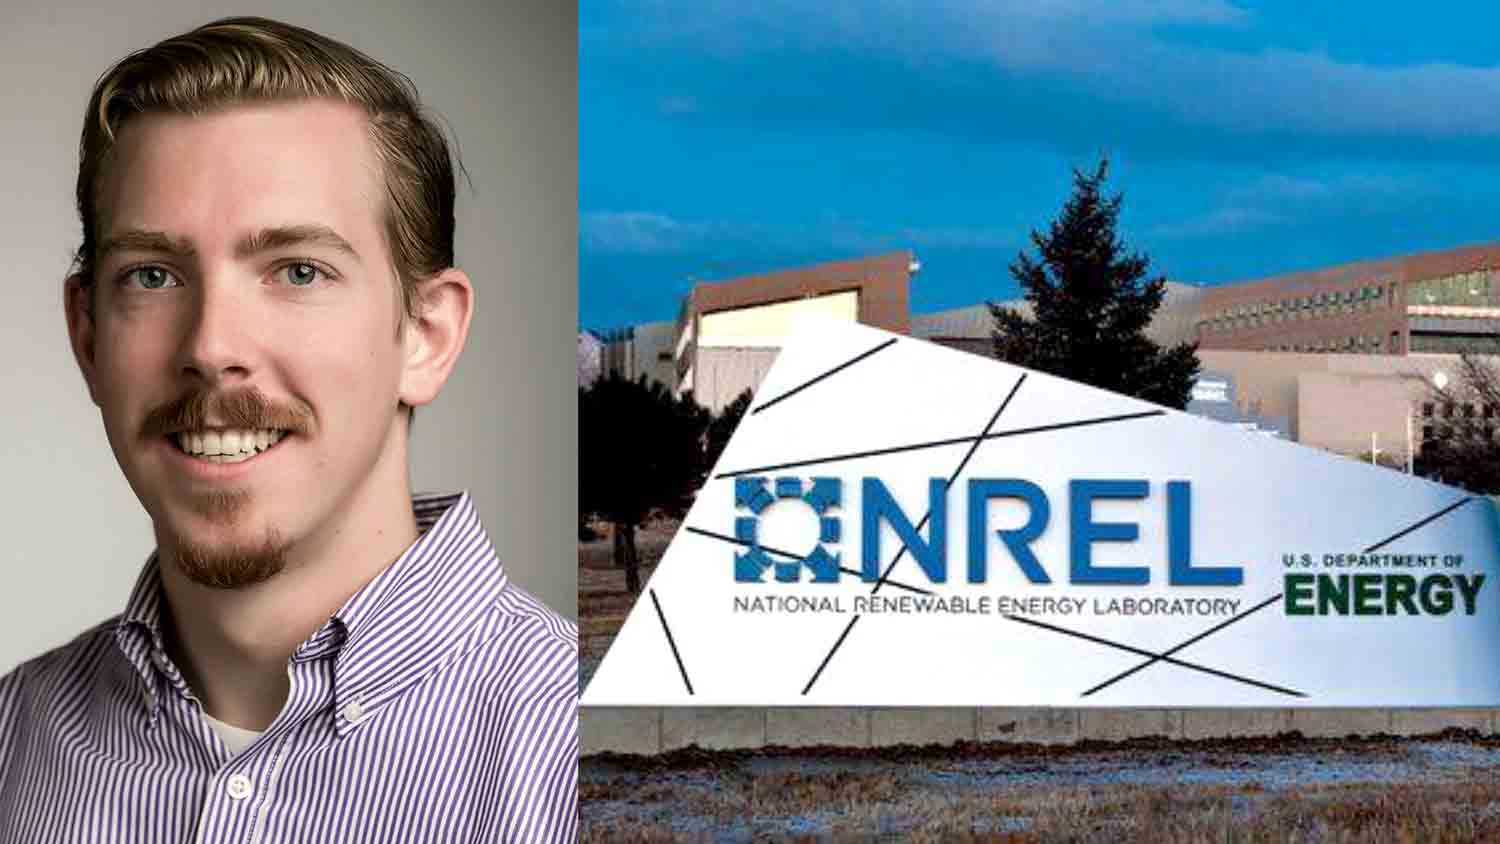 COT alumnus Andrew Parker headshot and NREL sign